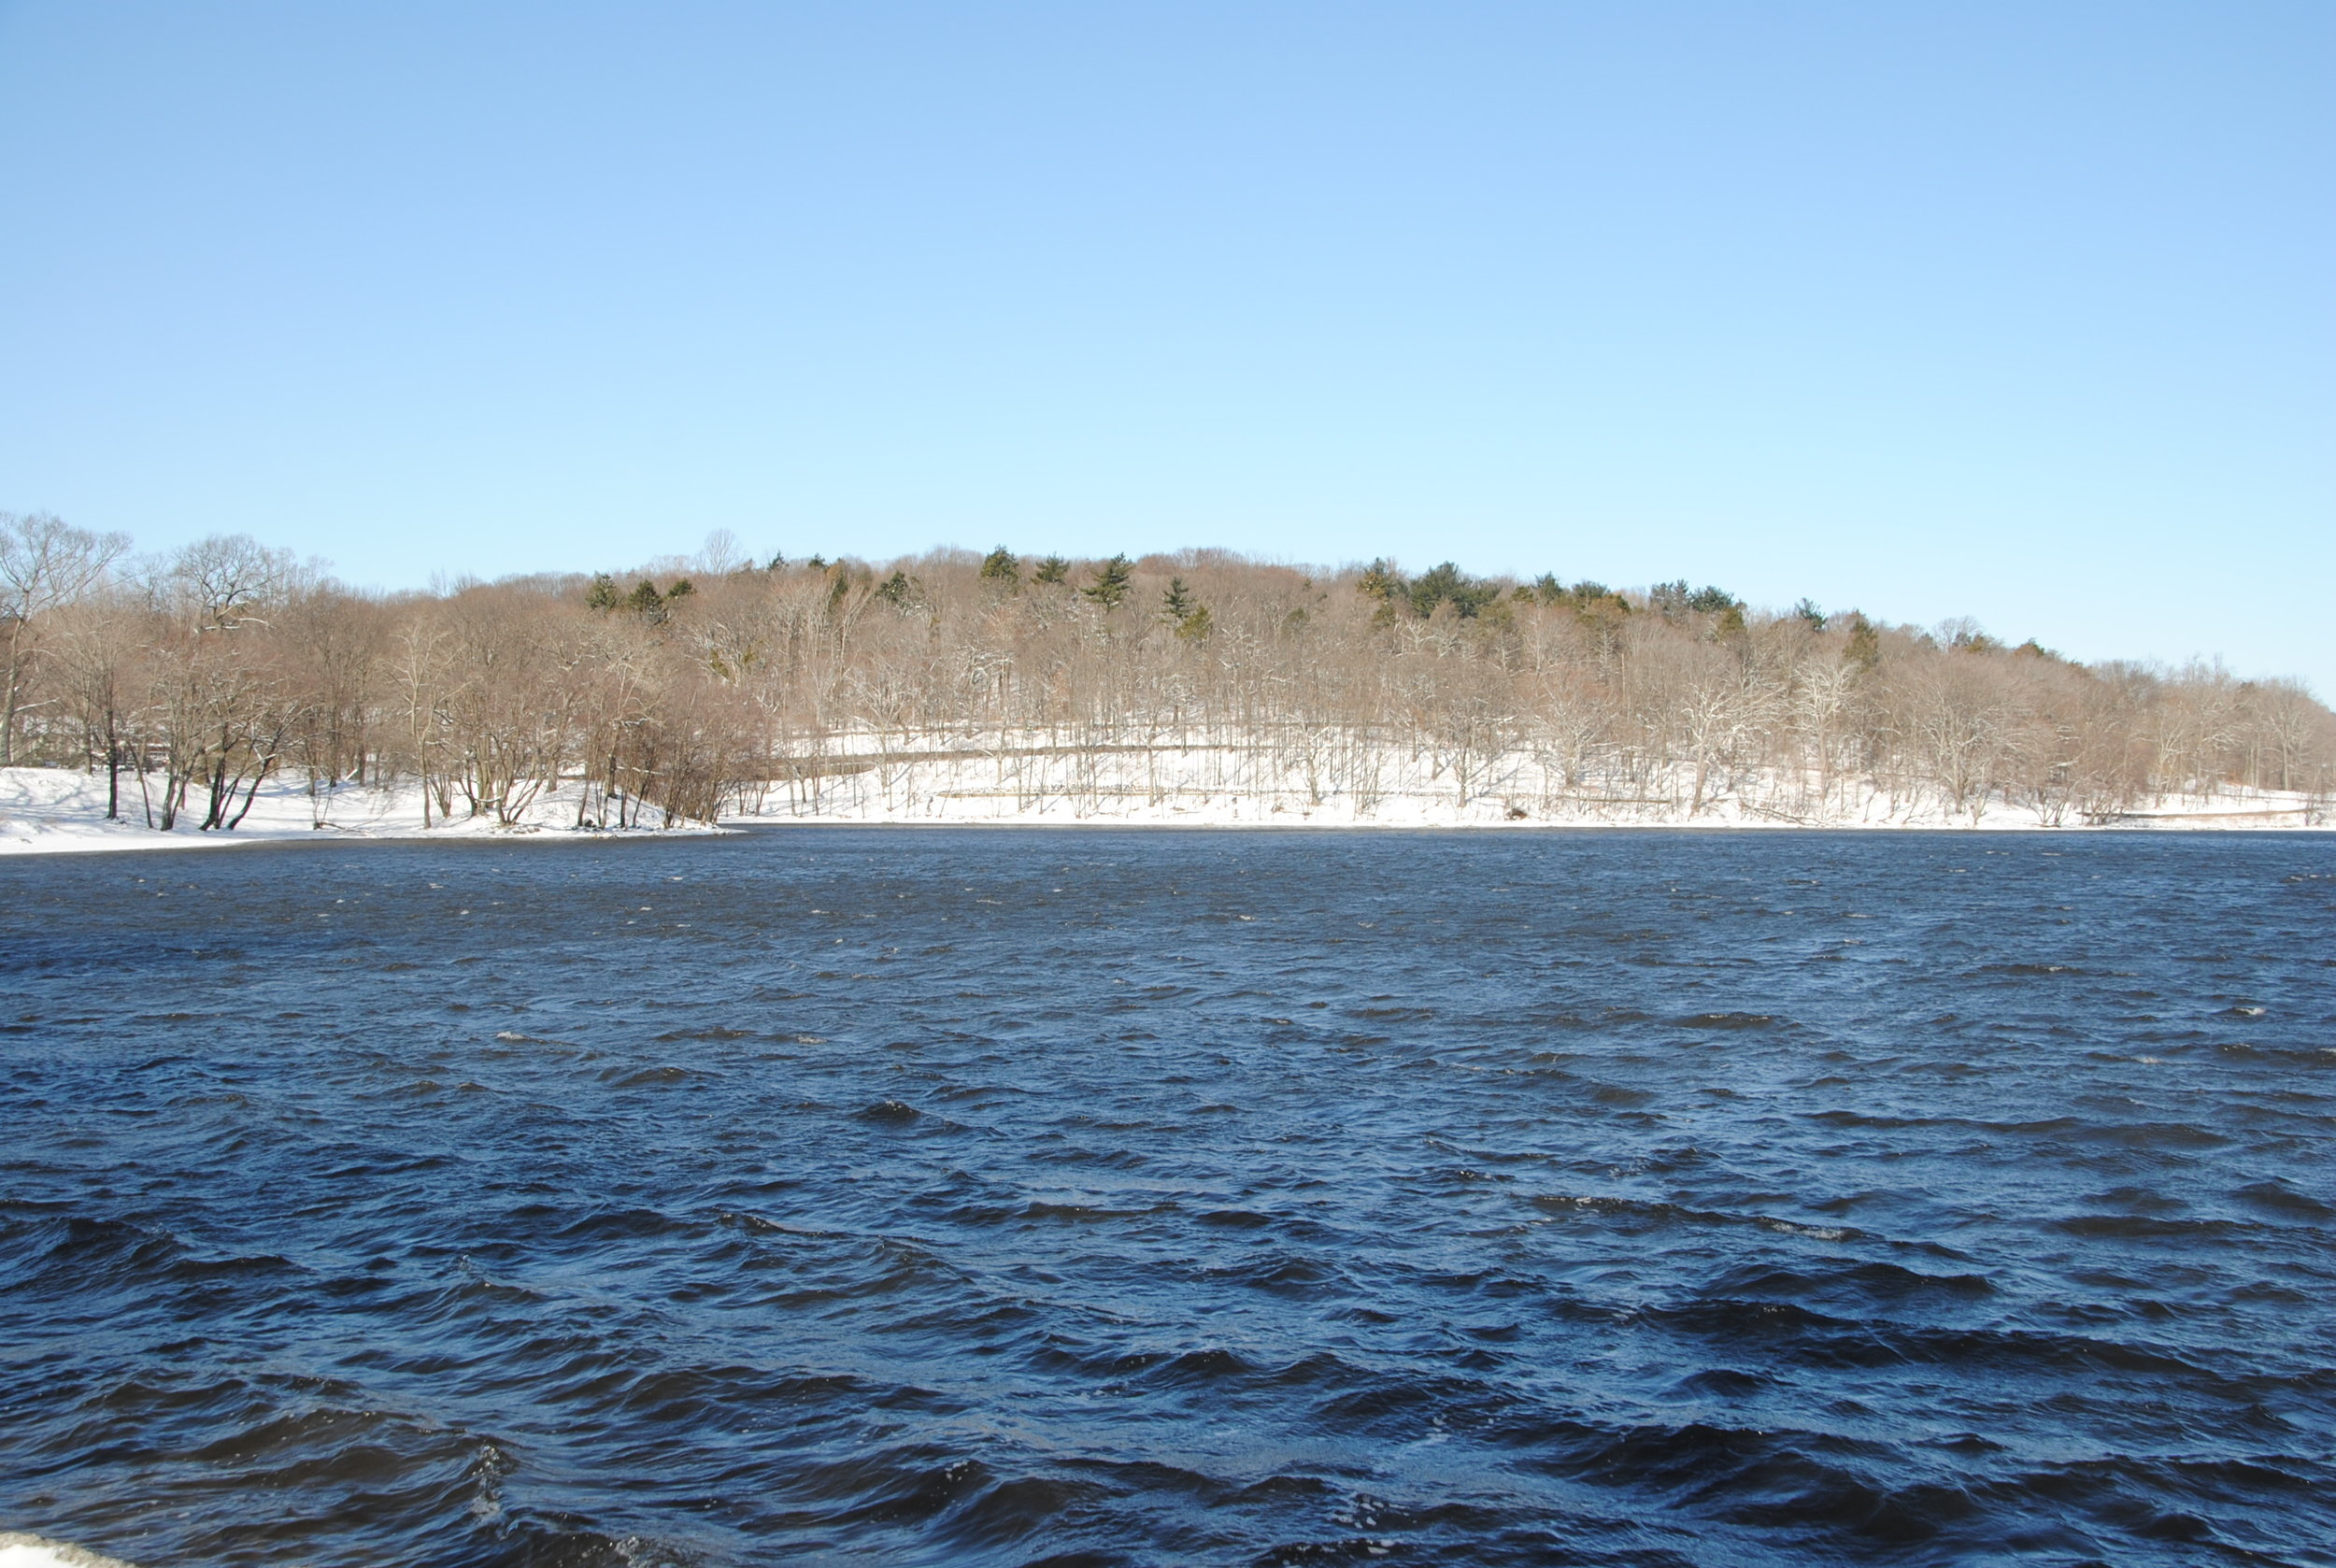 Hellenic Hill from Jamaica Pond. March 2017. Photograph courtesy of Richard Heath.